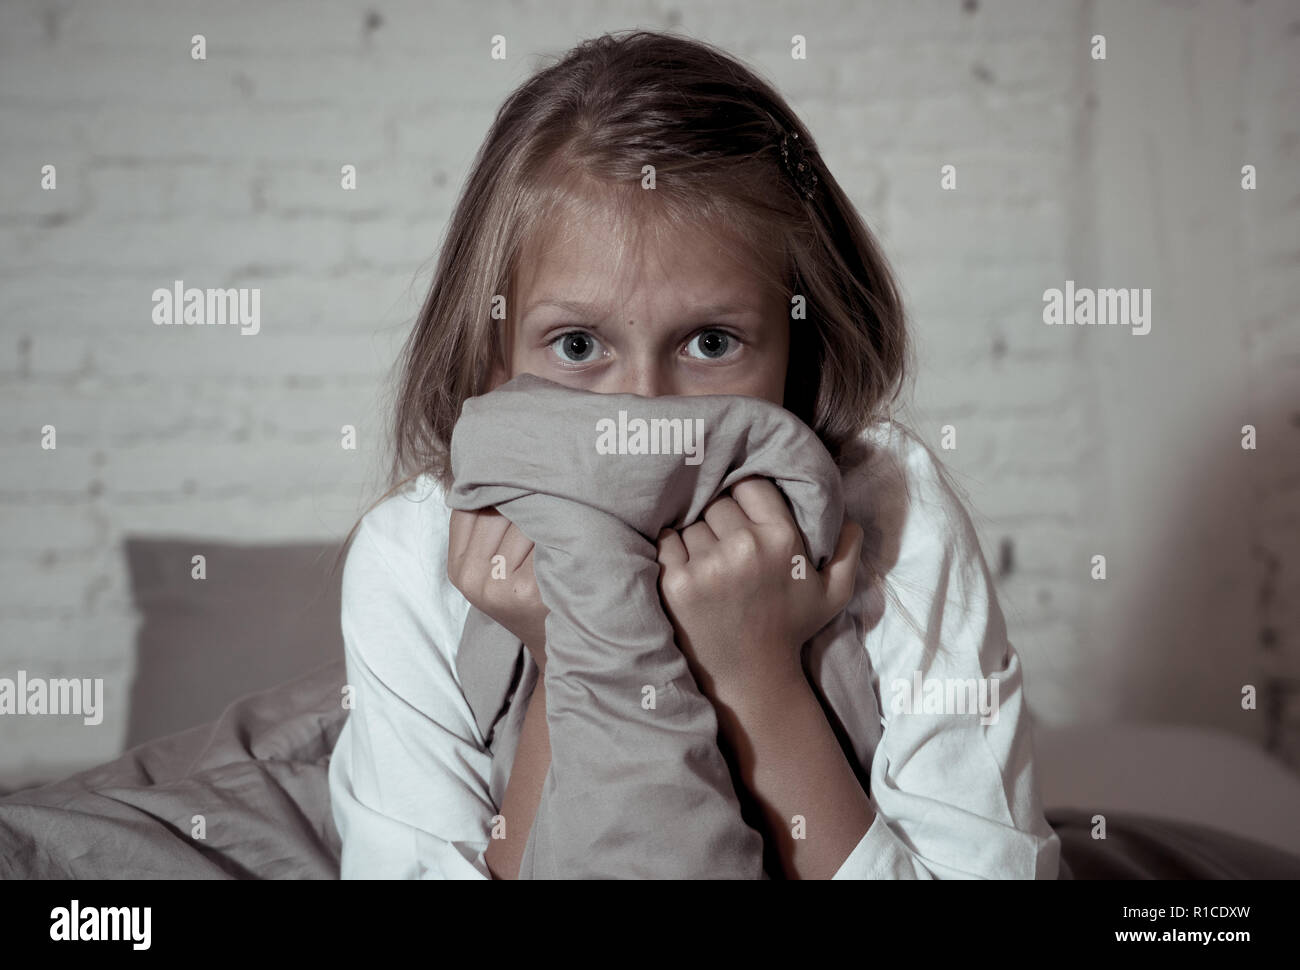 Scared little girl staying sleepless hiding behind the duvet looking horrified in the dark having childhood nightmares in child imagination Sleeping d Stock Photo